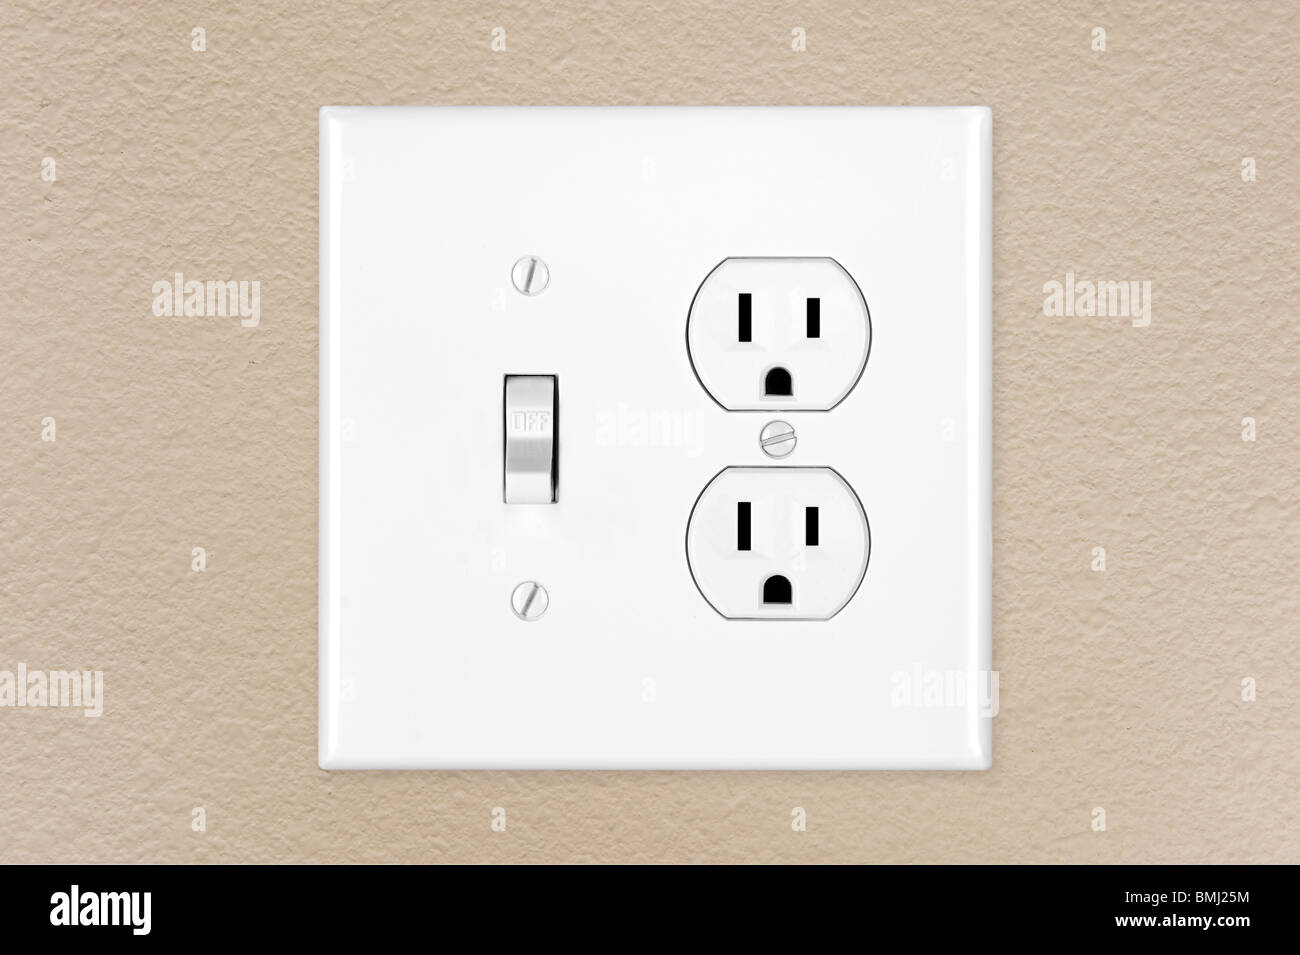 A Brand New Modern Electrical Toggle Light Switch And Power Outlet On Freshly Painted Wall